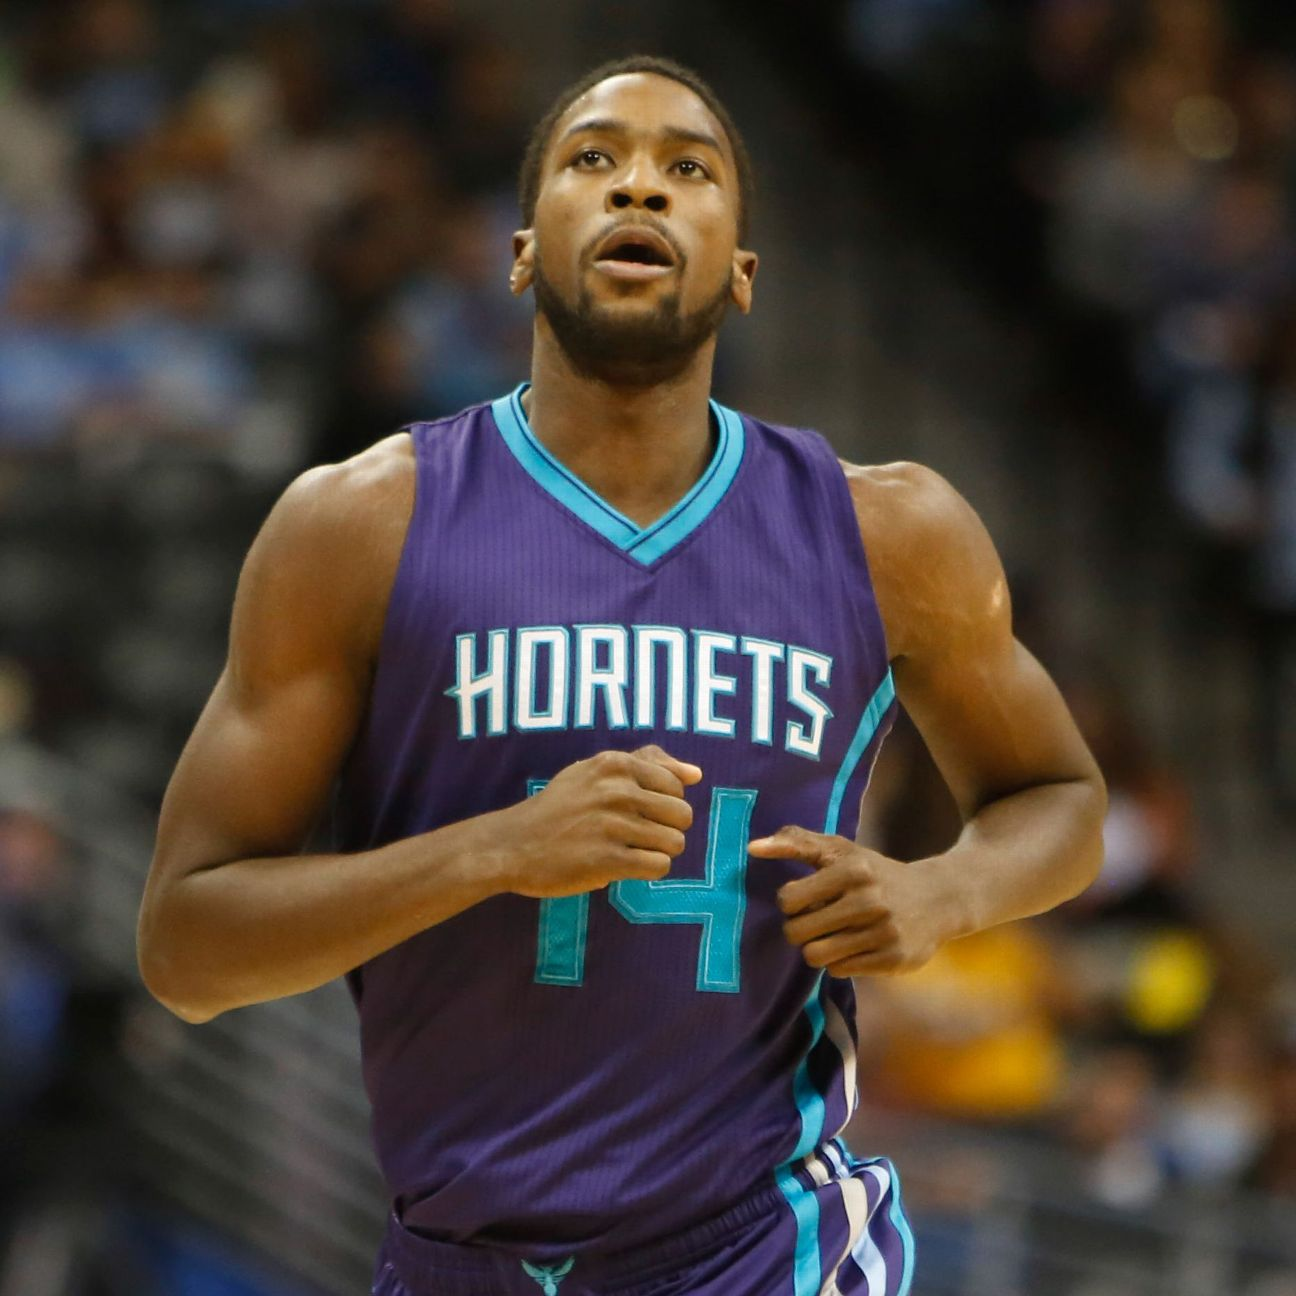 Kidd-Gilchrist on his Hornets deal: 'Why wait?'